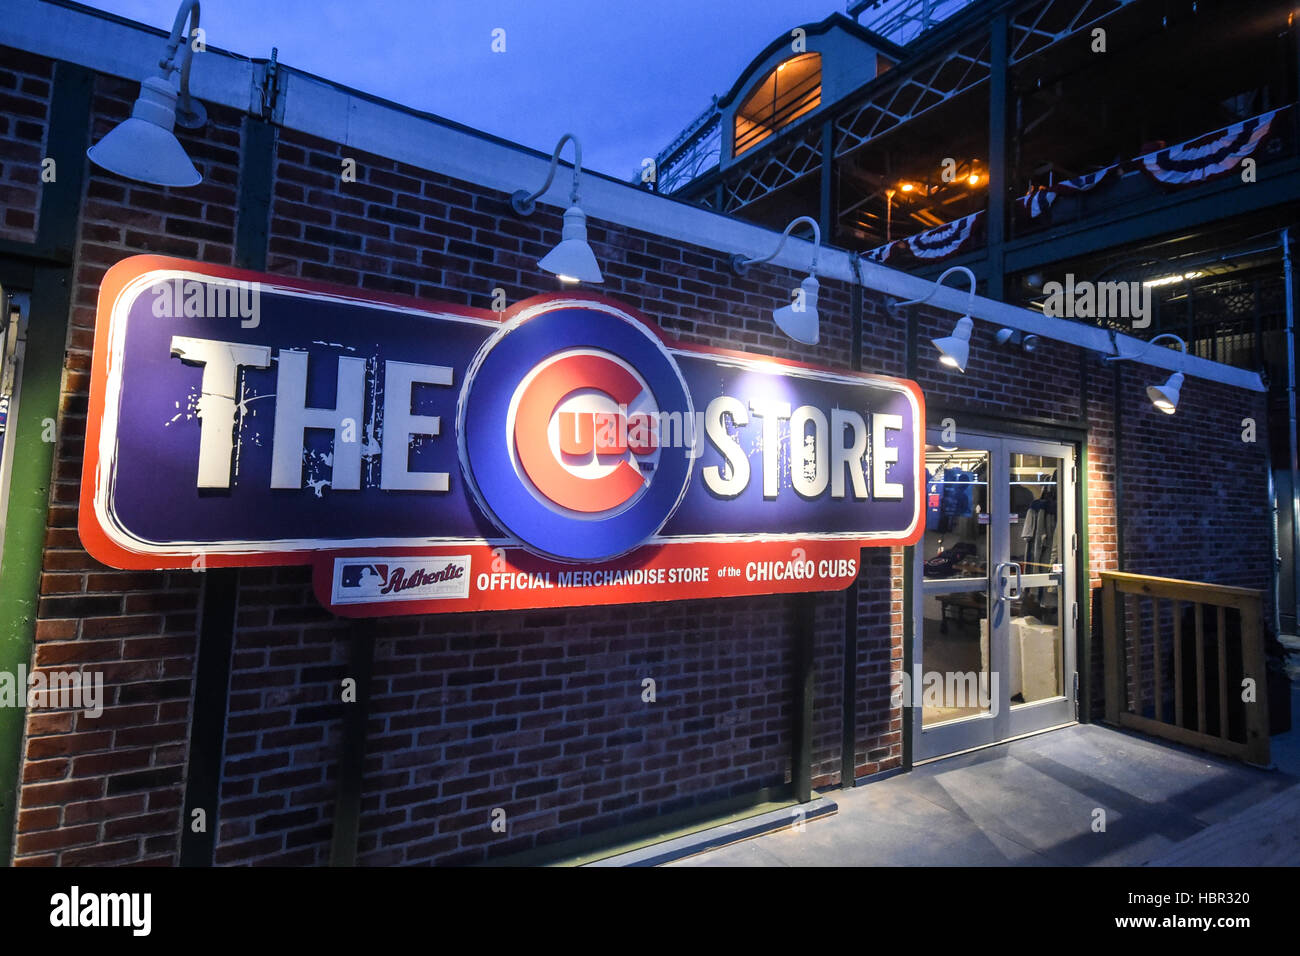 The Cubs Store. Wrigley Field is a baseball park located on the North Side of Chicago, Illinois. It is the home - Stock Image